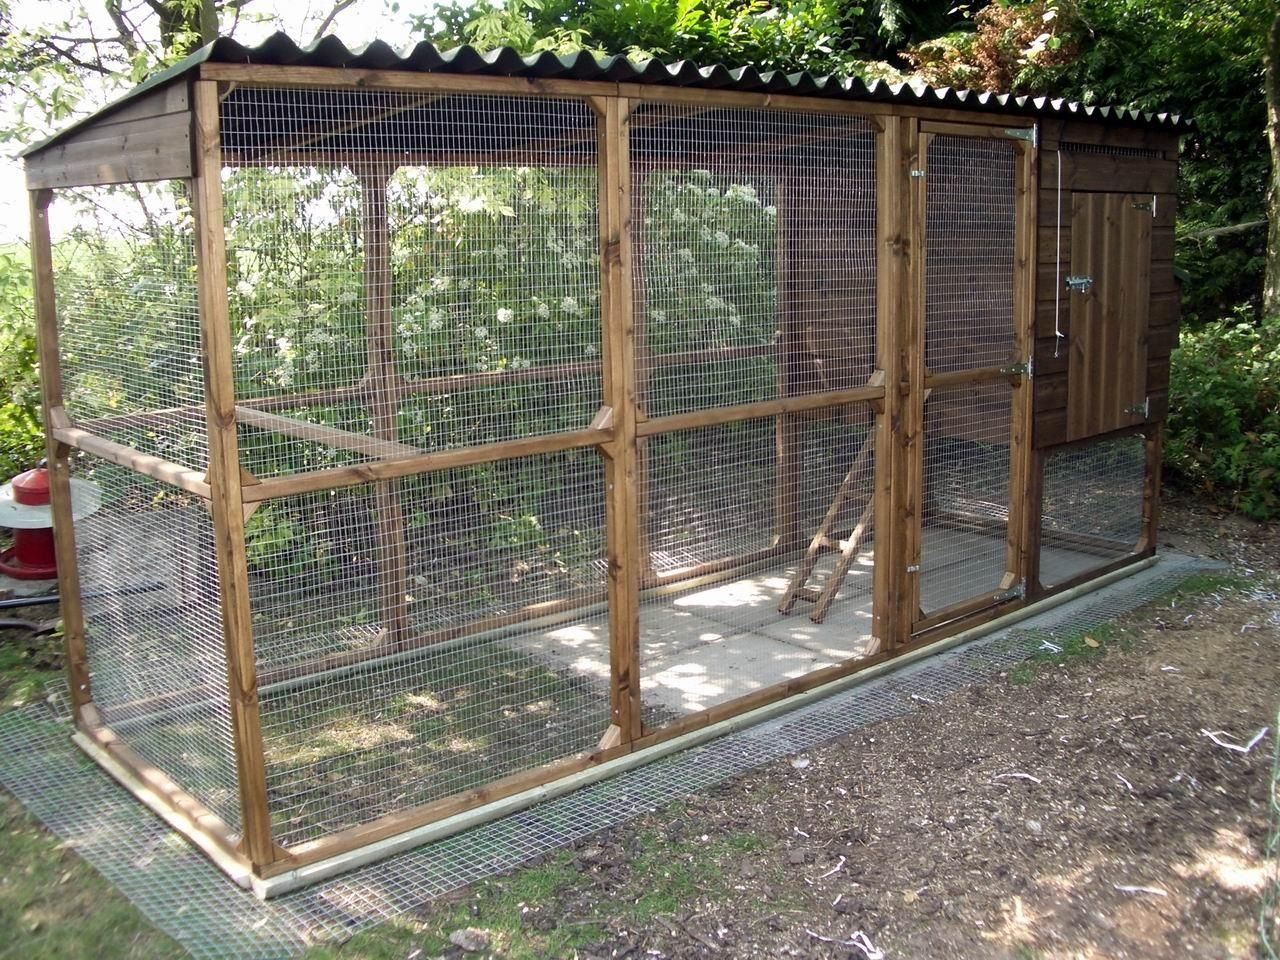 Love This Idea For An Extension Chicken Coop Run Backyard Chicken Coop Plans Chickens Backyard Backyard free range chicken house design